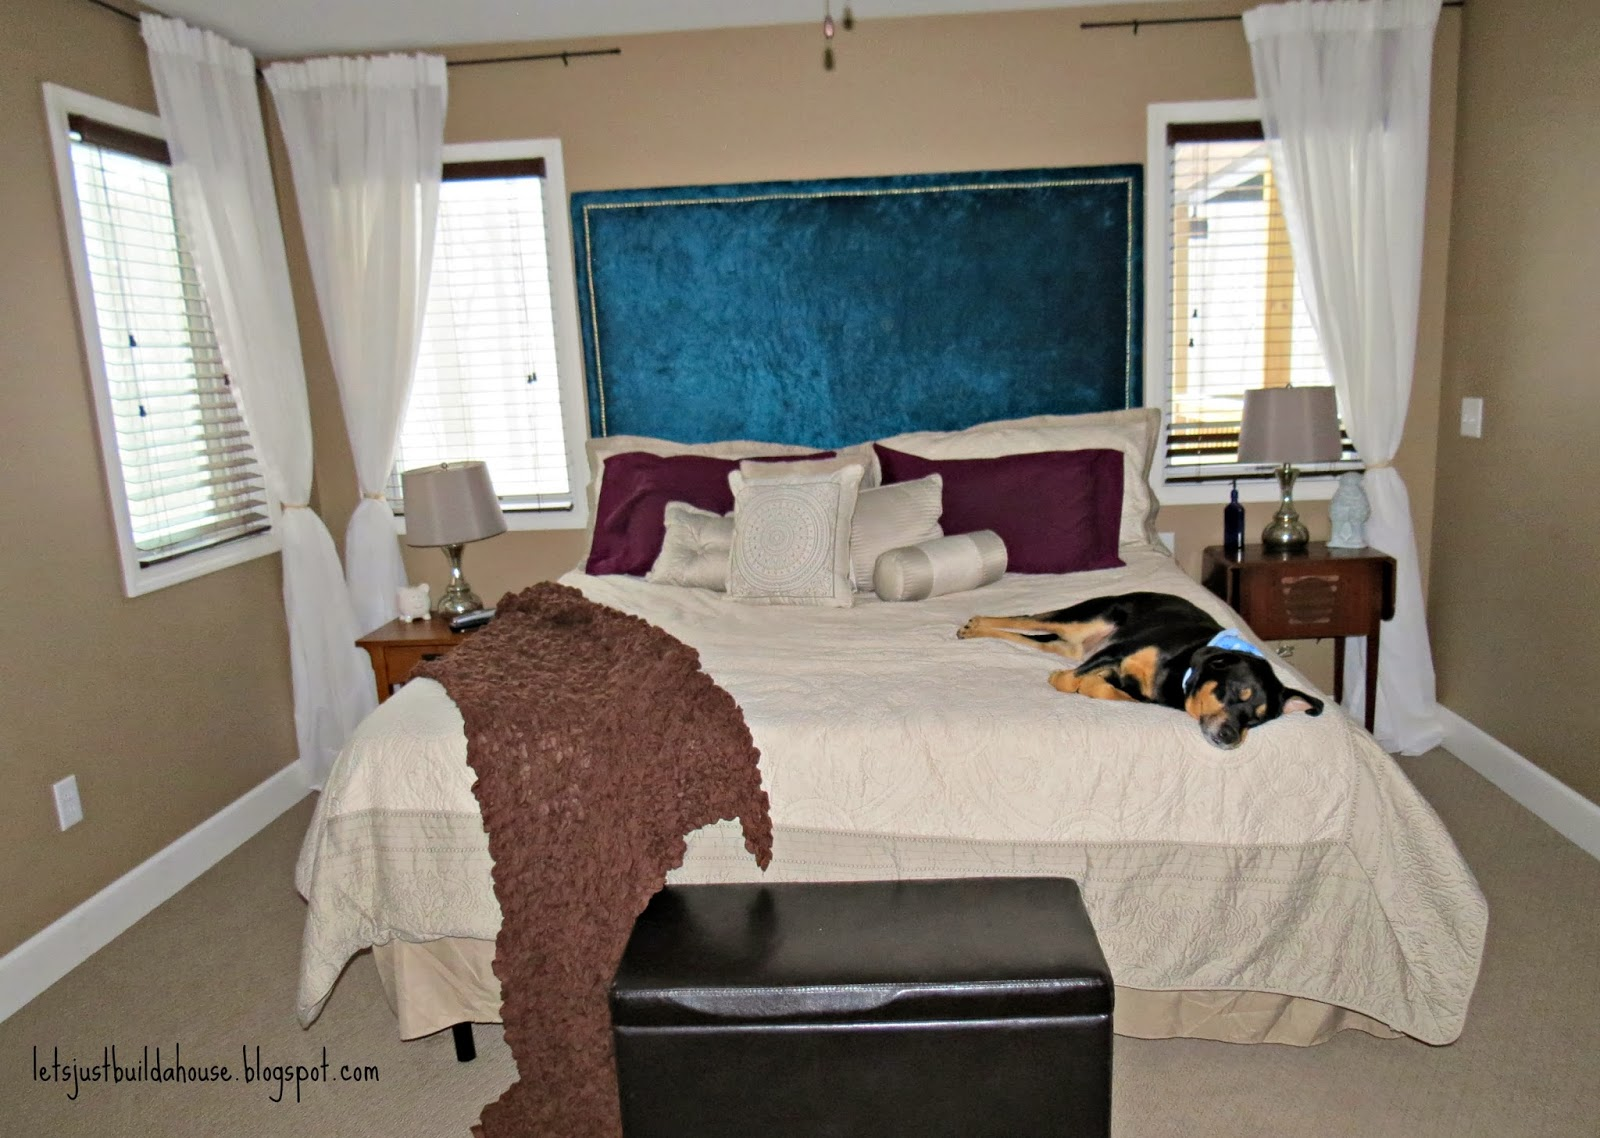 Let 39 s just build a house house tour master bedroom Can we have master bedroom in south east